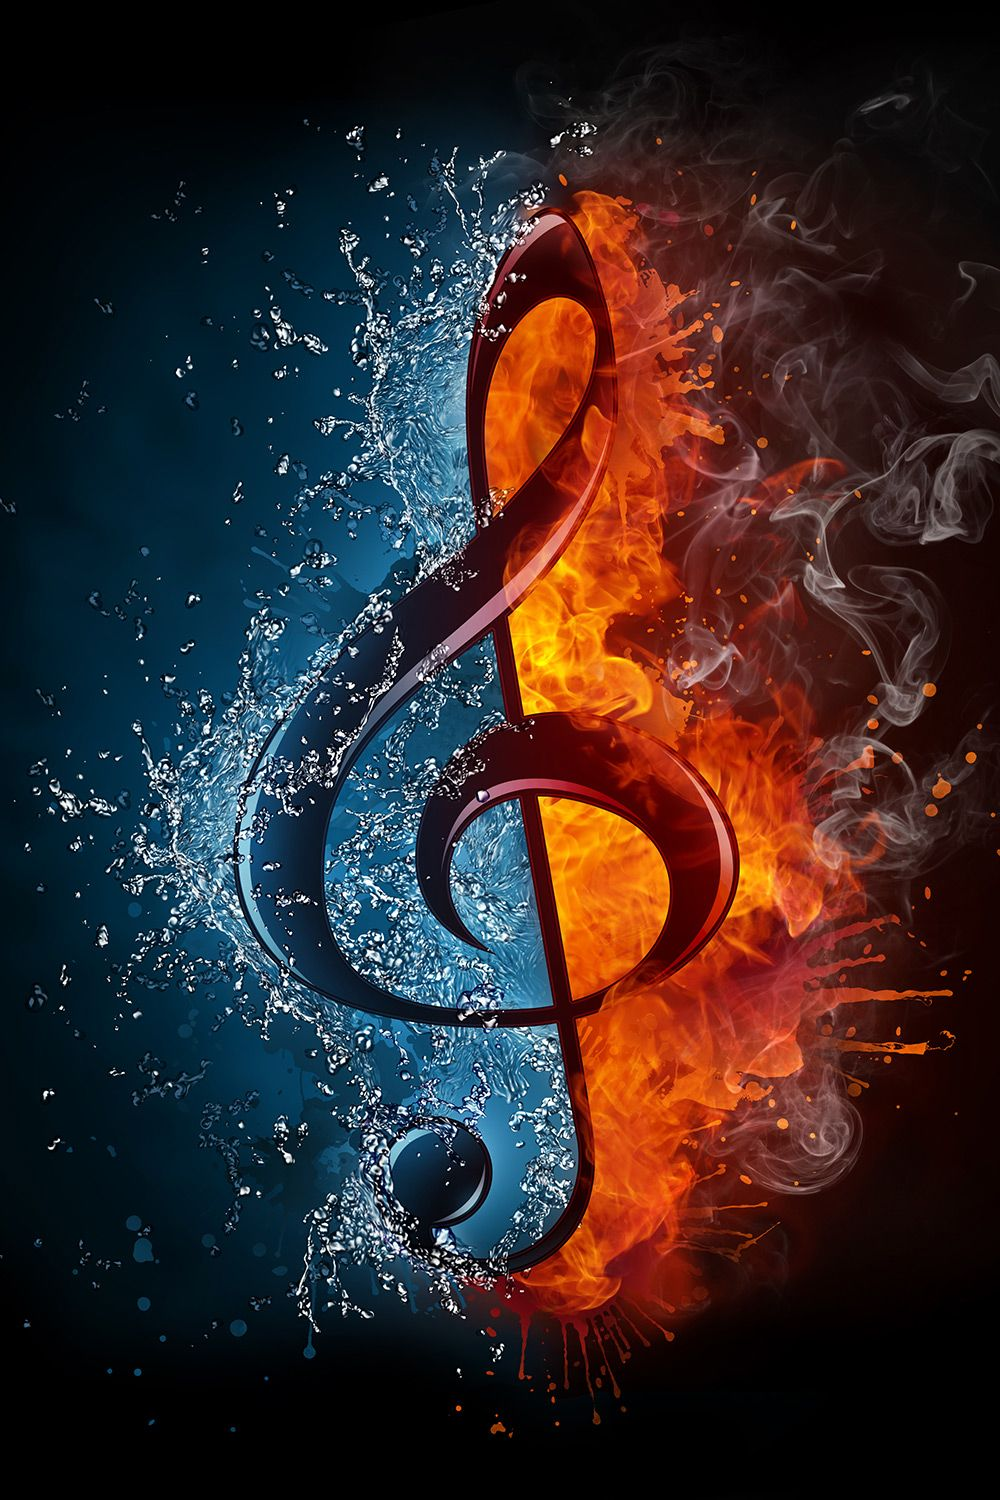 Choose Fire Ice Music Symbol Wallpaper To Create Fantastic Wall